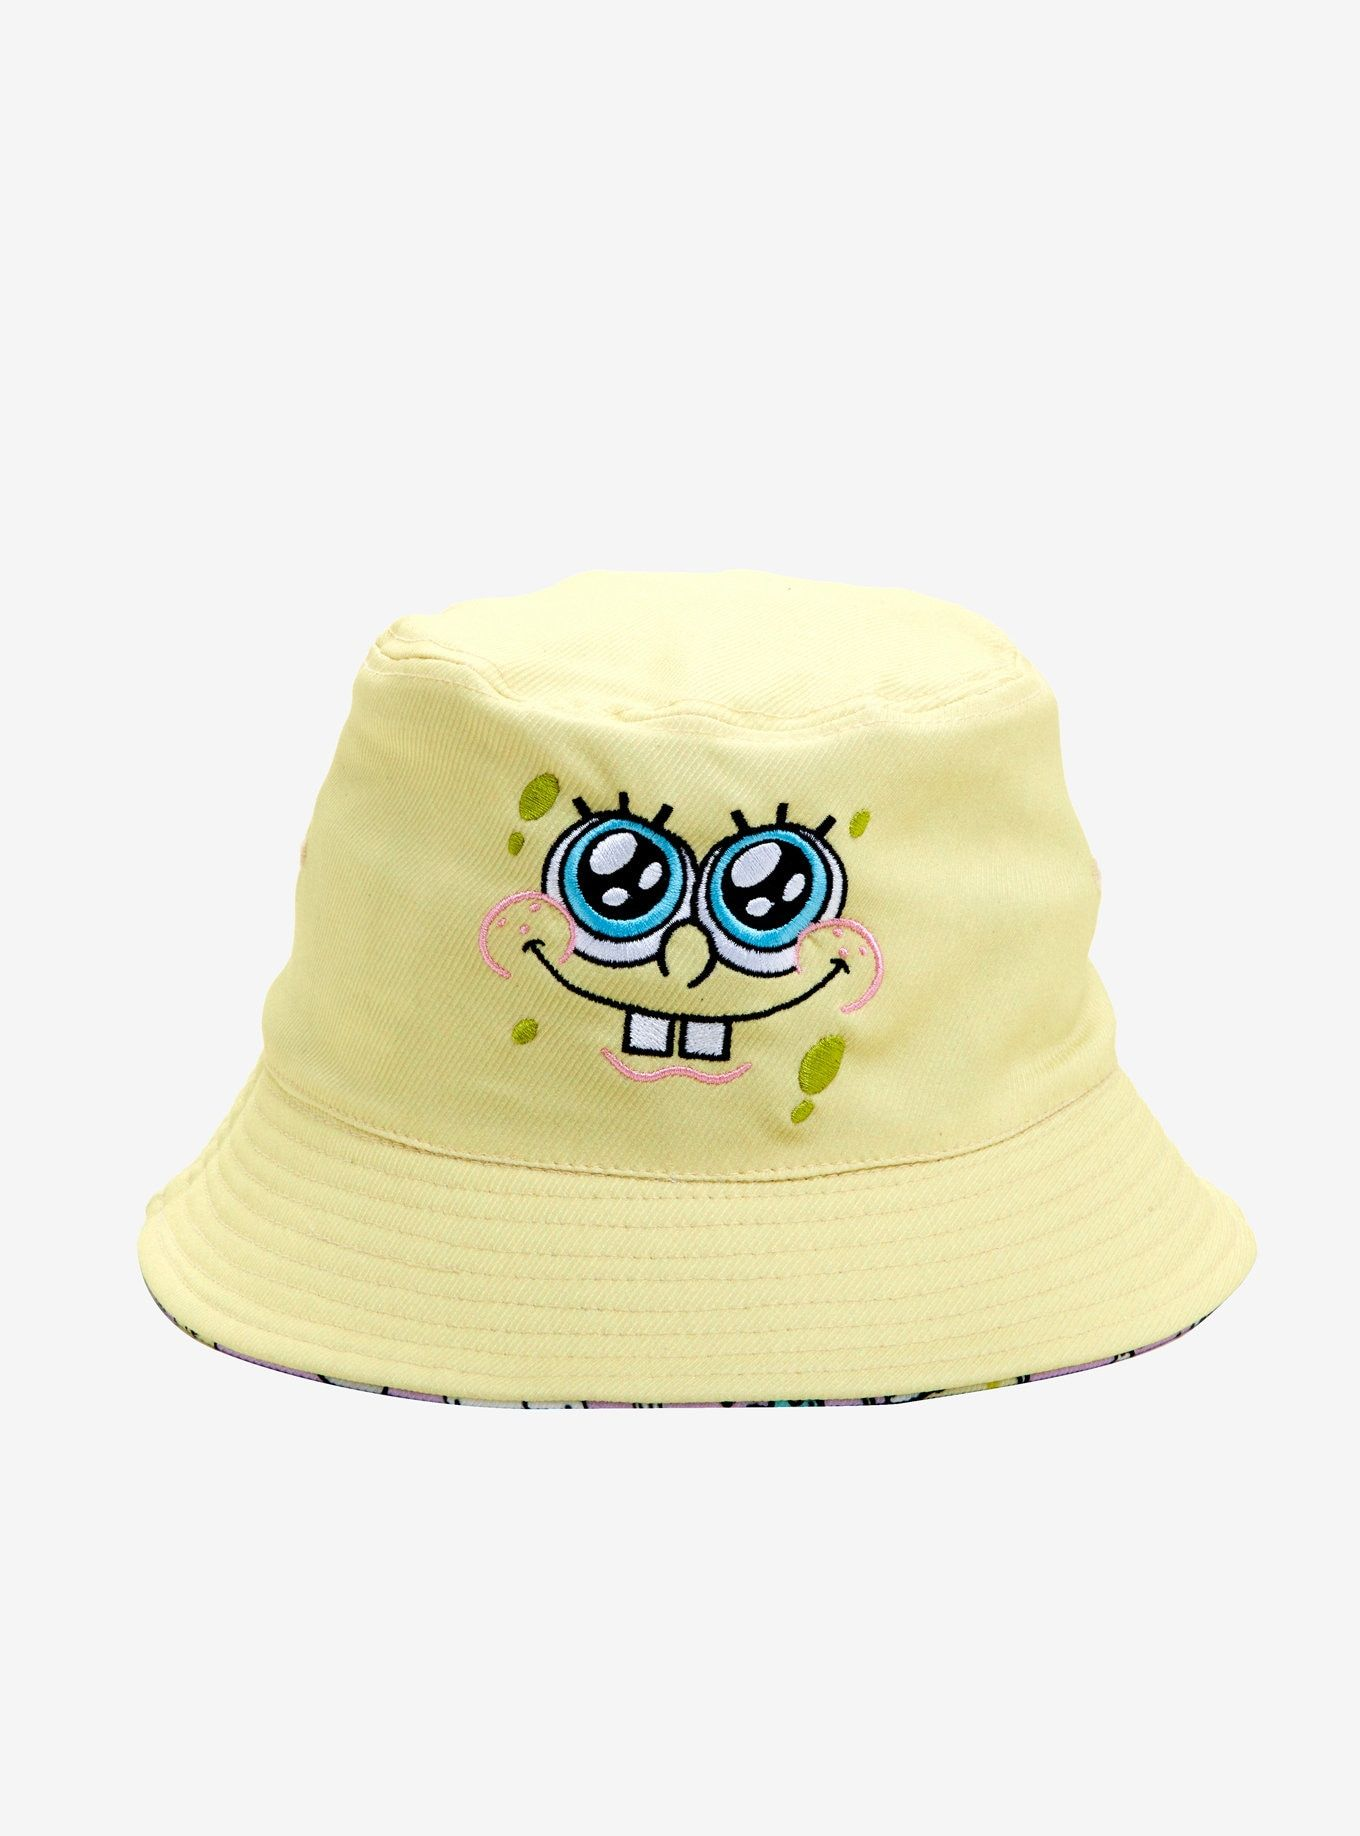 53e4df34aae SpongeBob Squarepants Reversible Bucket Hat